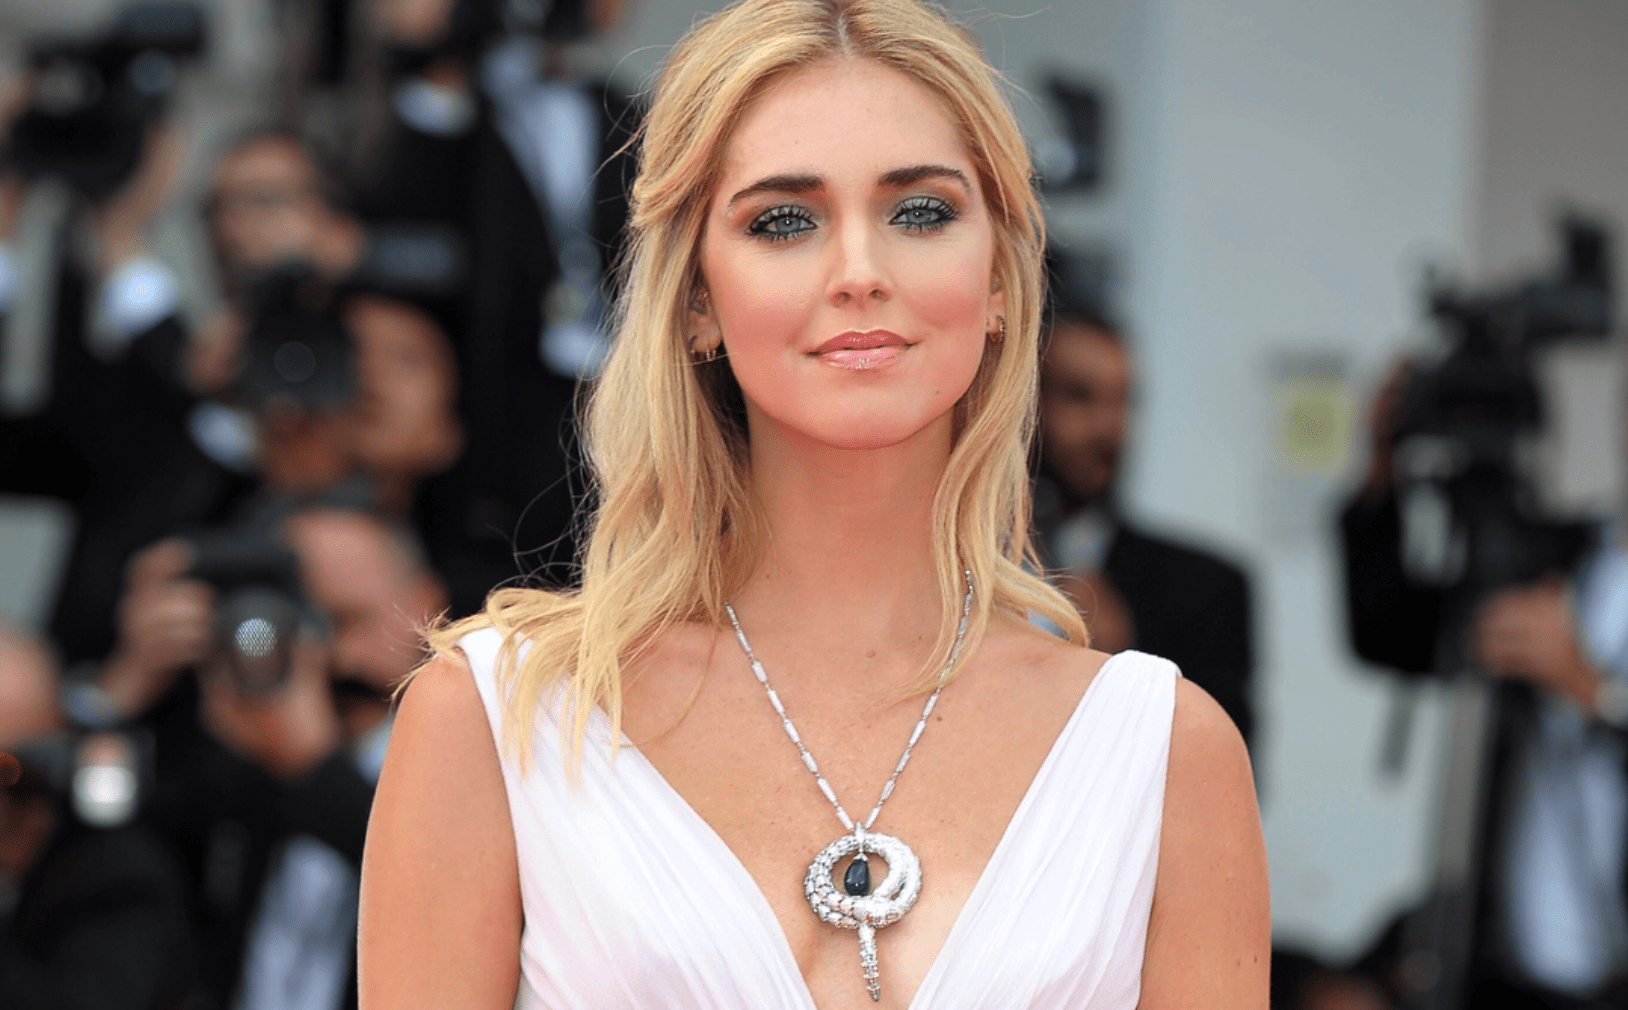 chiara ferragni incinta red carpet venezia pancino sospetto